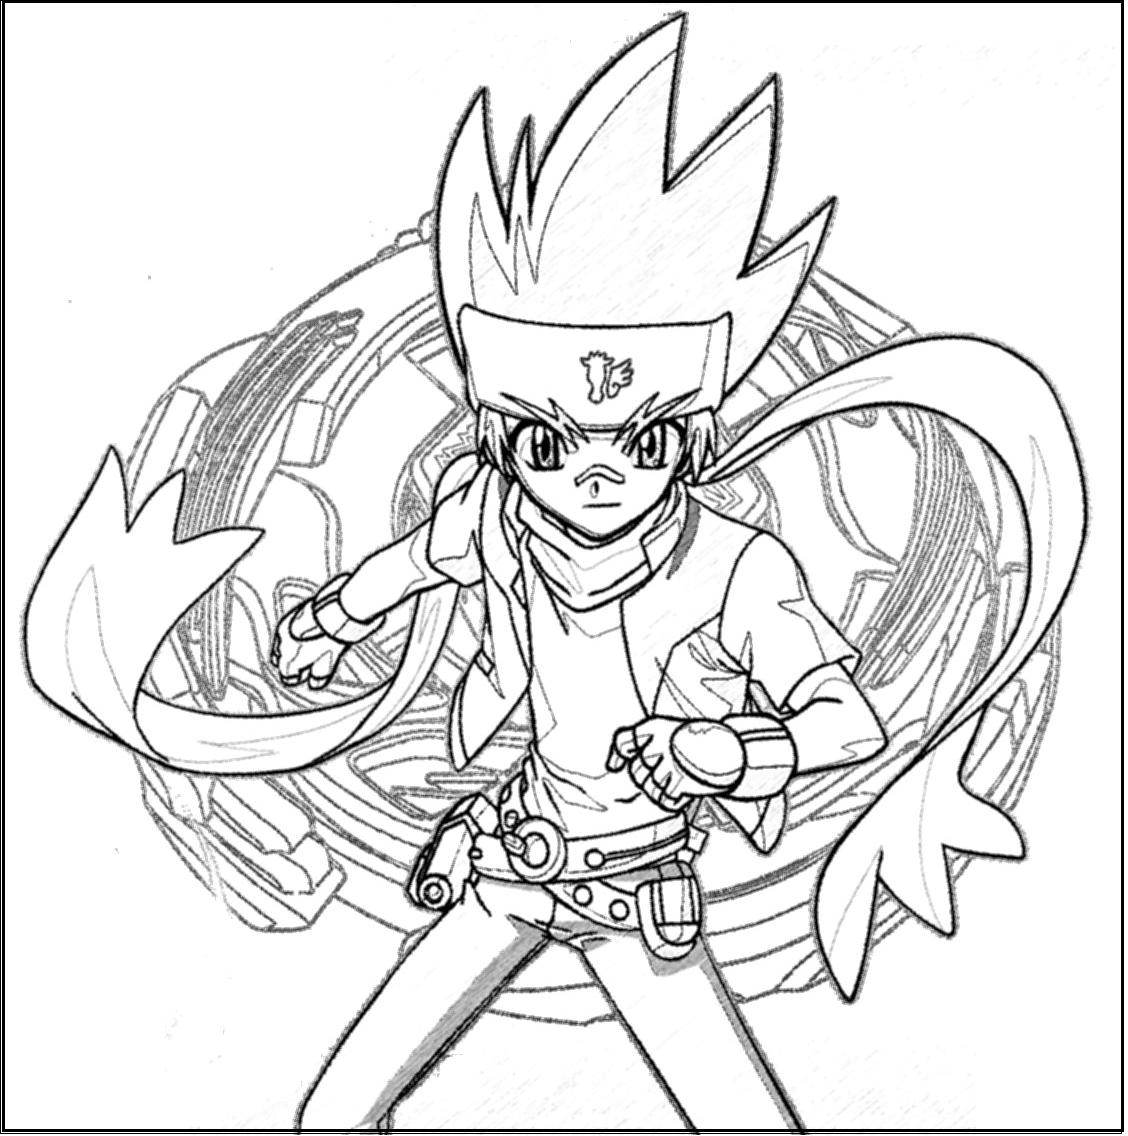 beyblade pegasus coloring pages free printable beyblade coloring pages for kids cool2bkids pages pegasus coloring beyblade